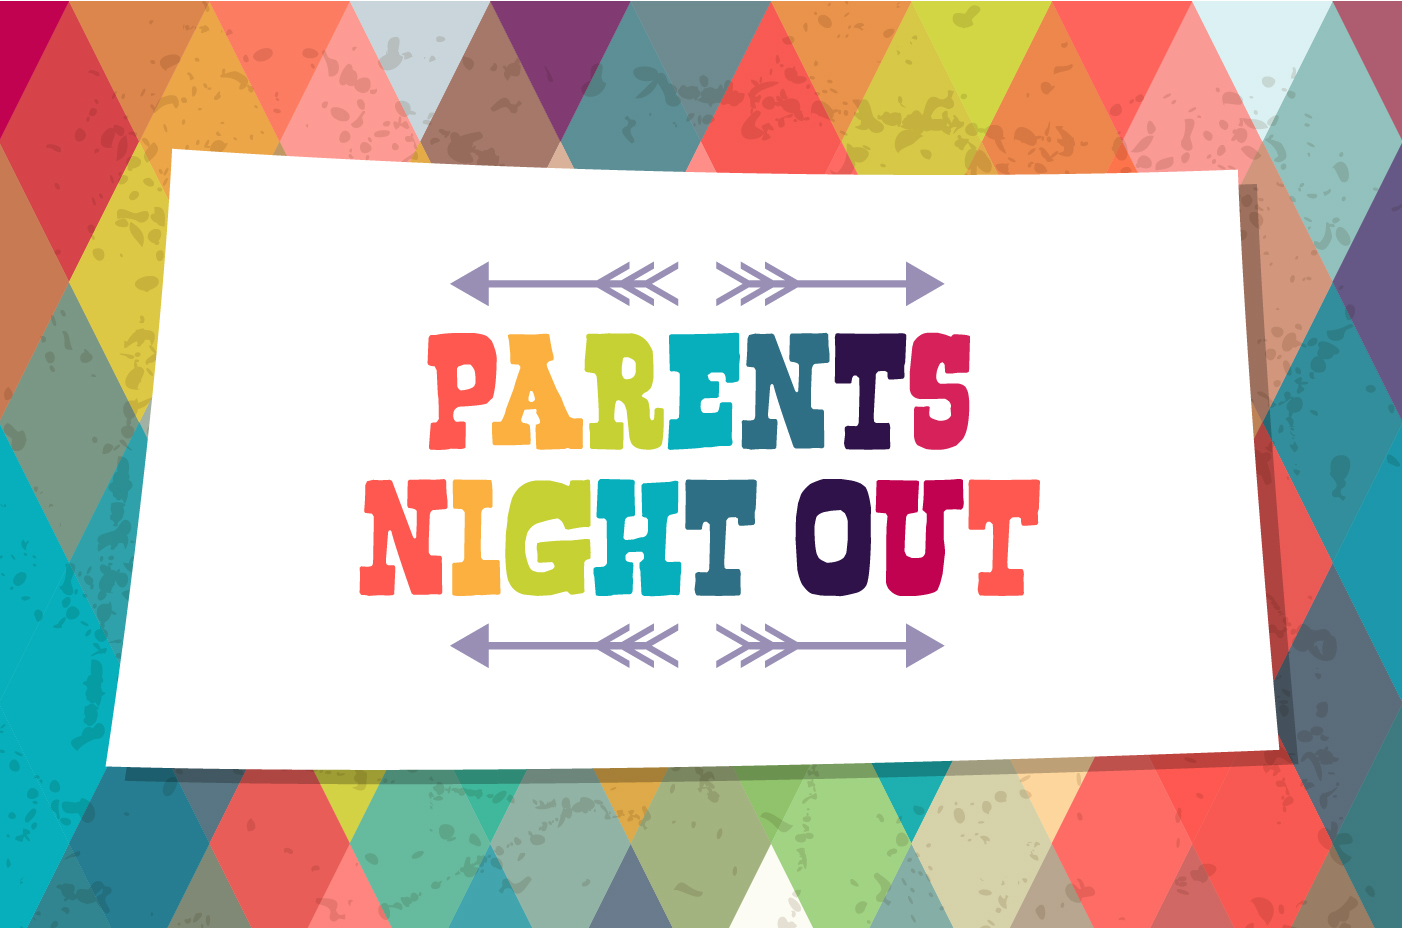 Parentsnightout nov